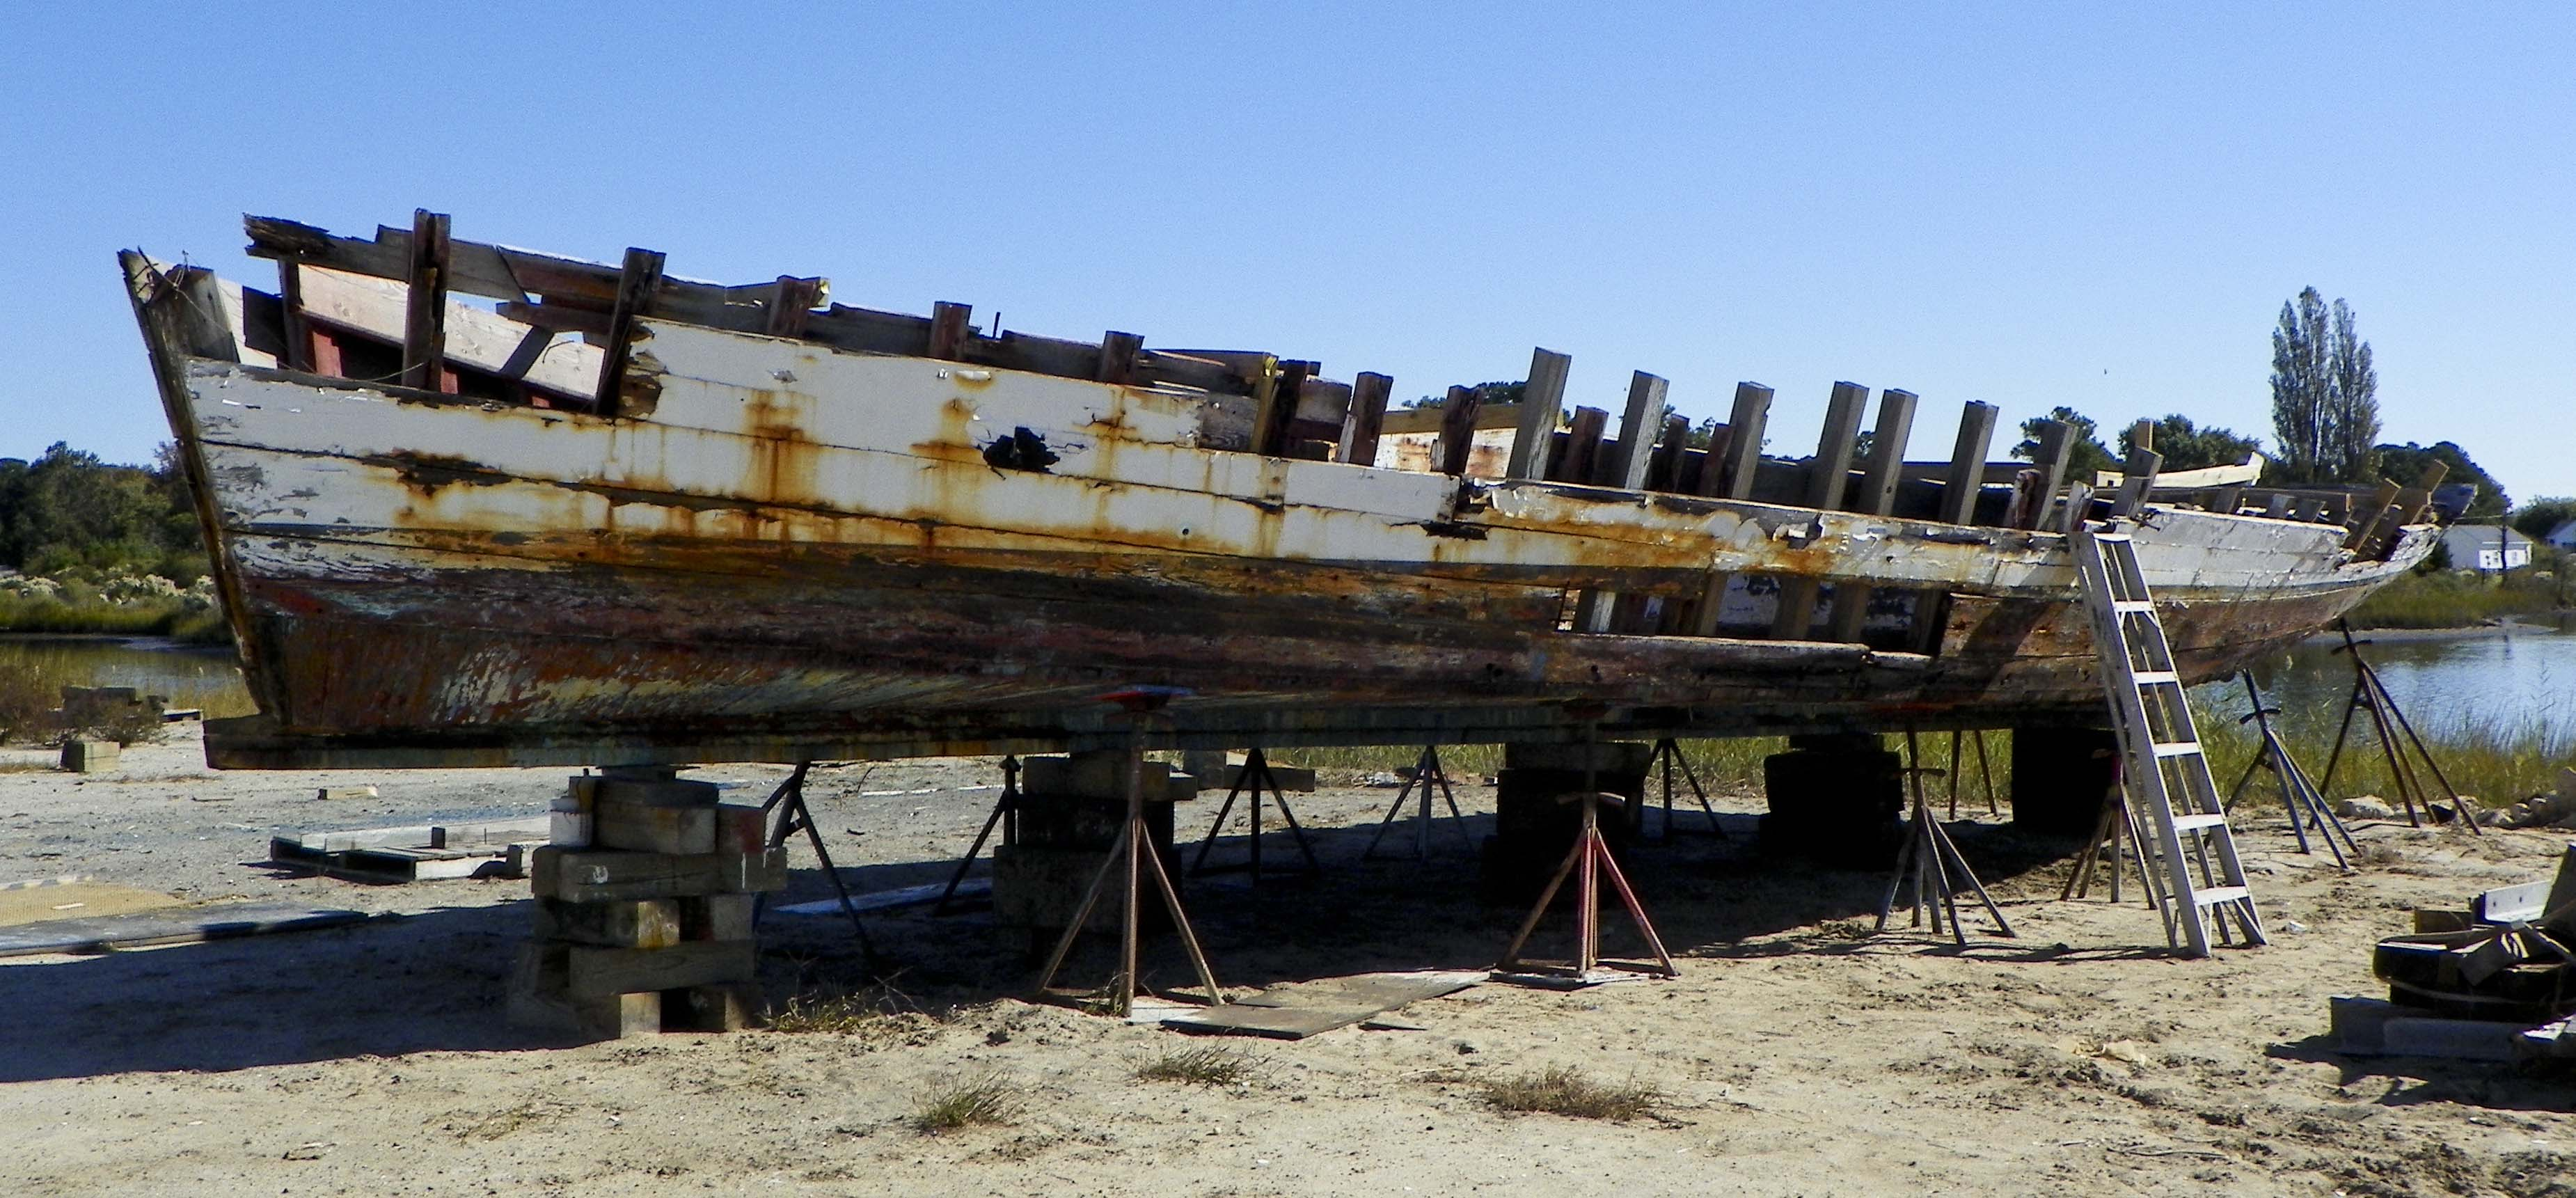 Skipjack George W. Collier waits for restoration at Deal Island.